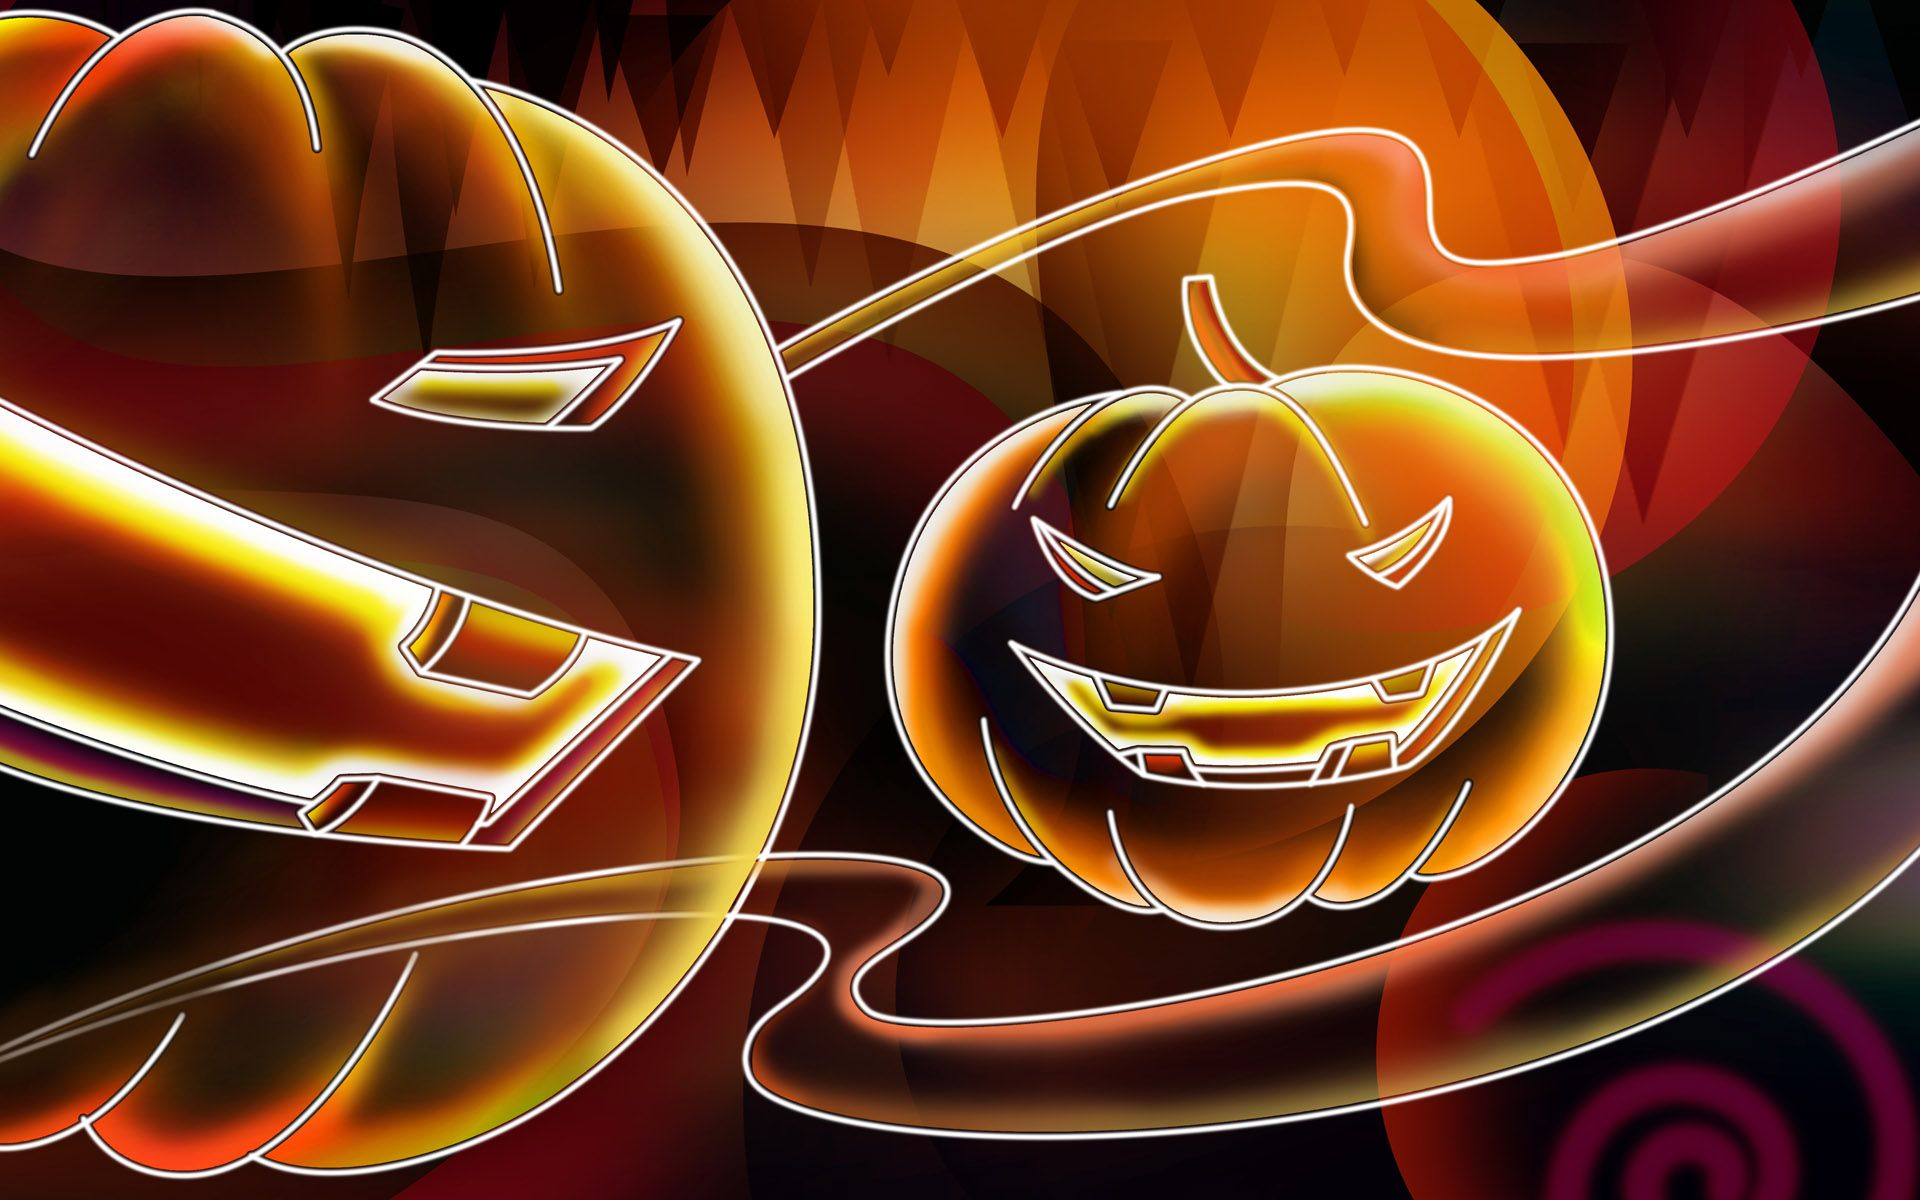 Halloween Traditie.Halloween Halloween Wallpaper Halloween Wallpaper Backgrounds Halloween Desktop Wallpaper